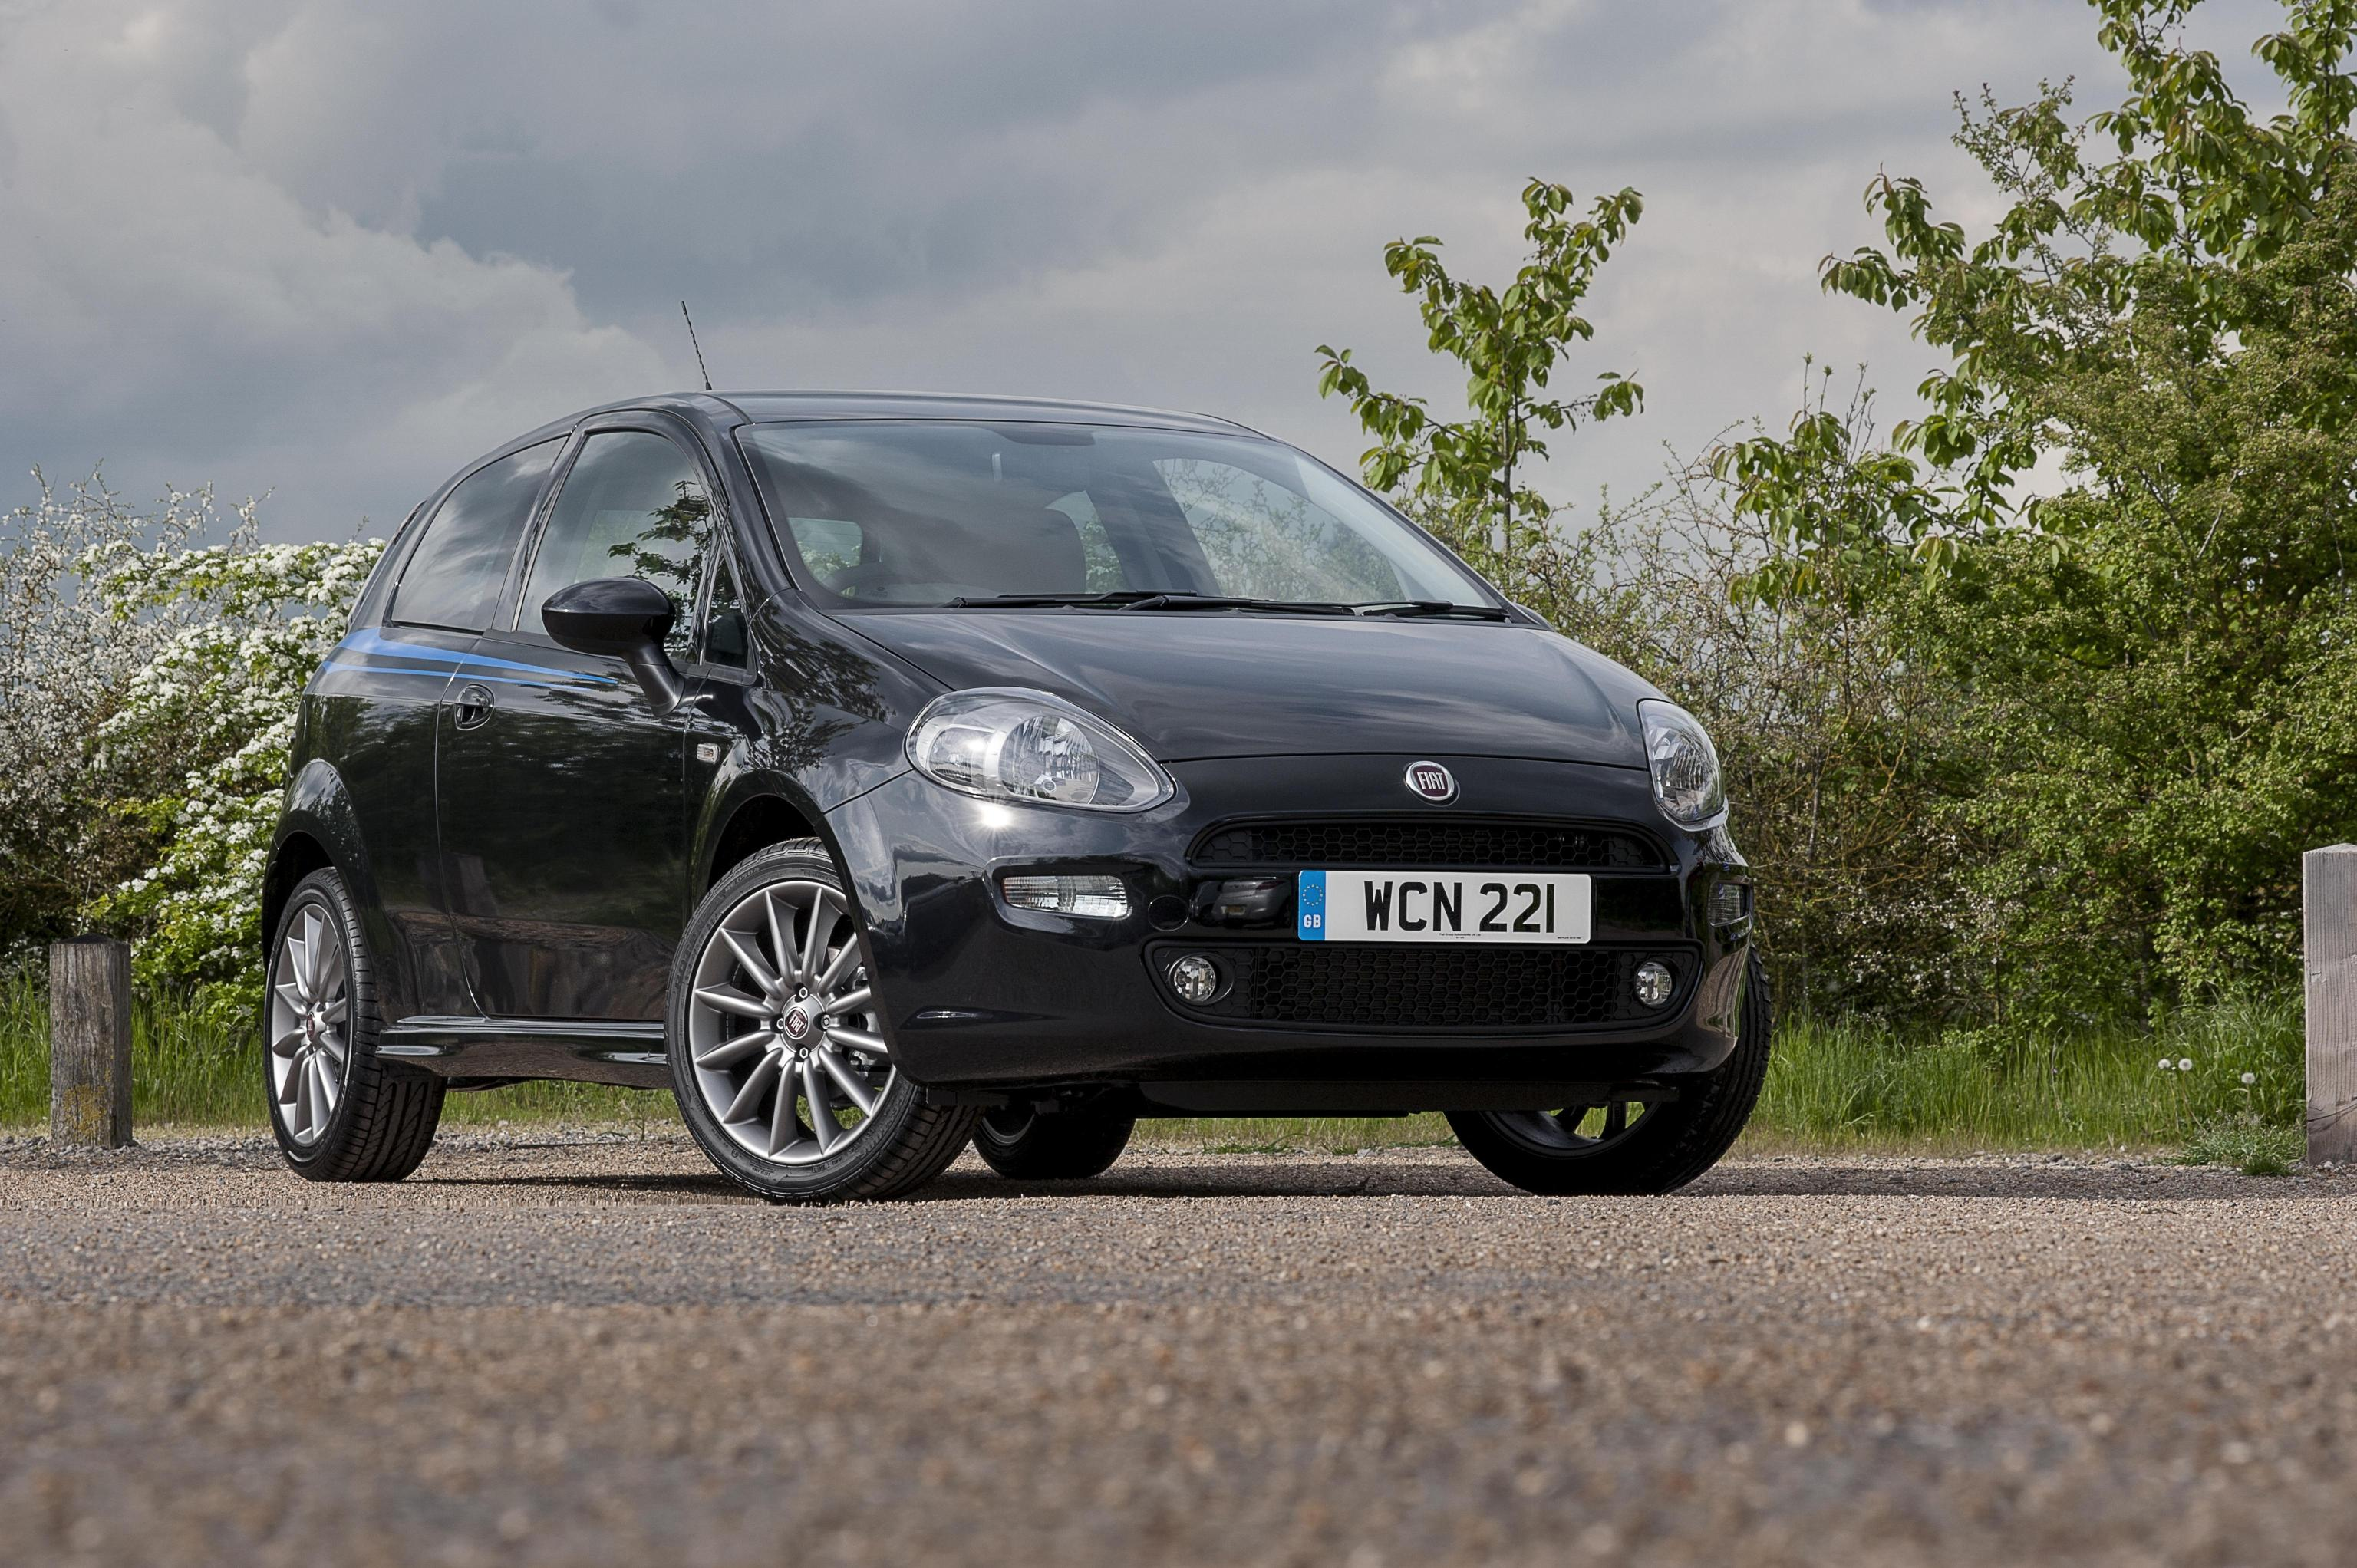 The Fiat Punto is based on a design originally introduced in 2005.jpg